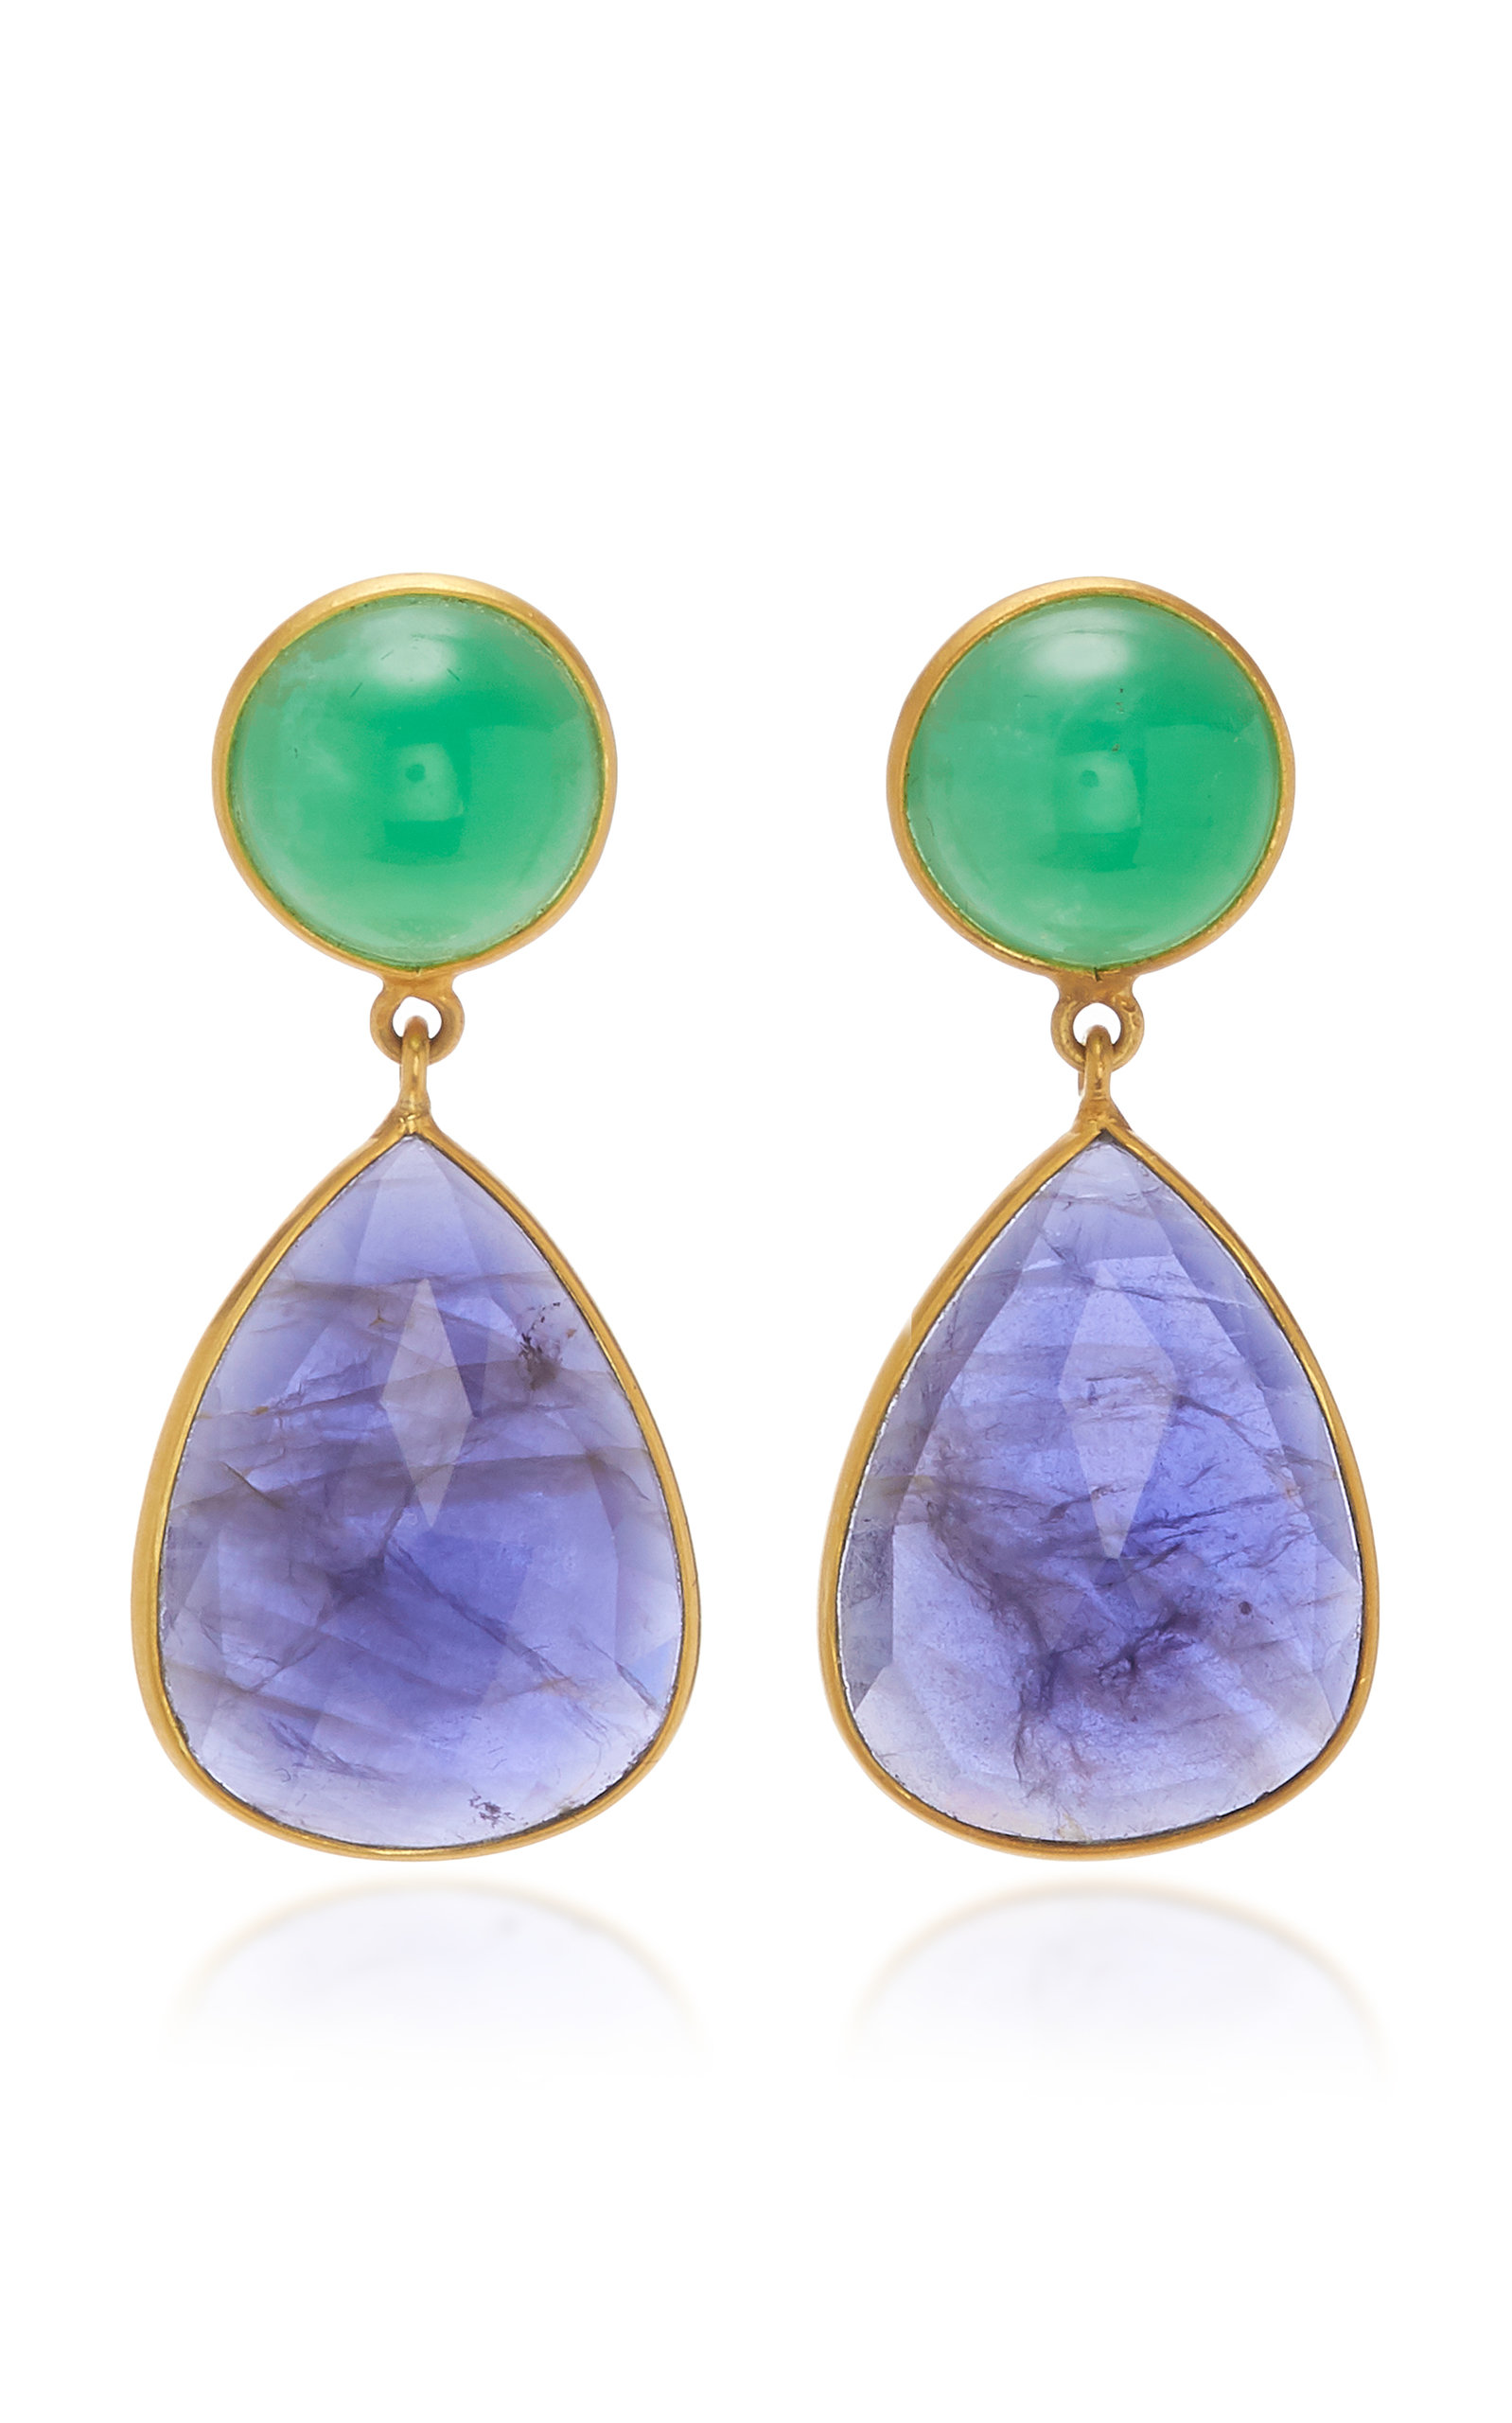 BAHINA 18K Gold Chrysoprase And Iolith Earrings in Green